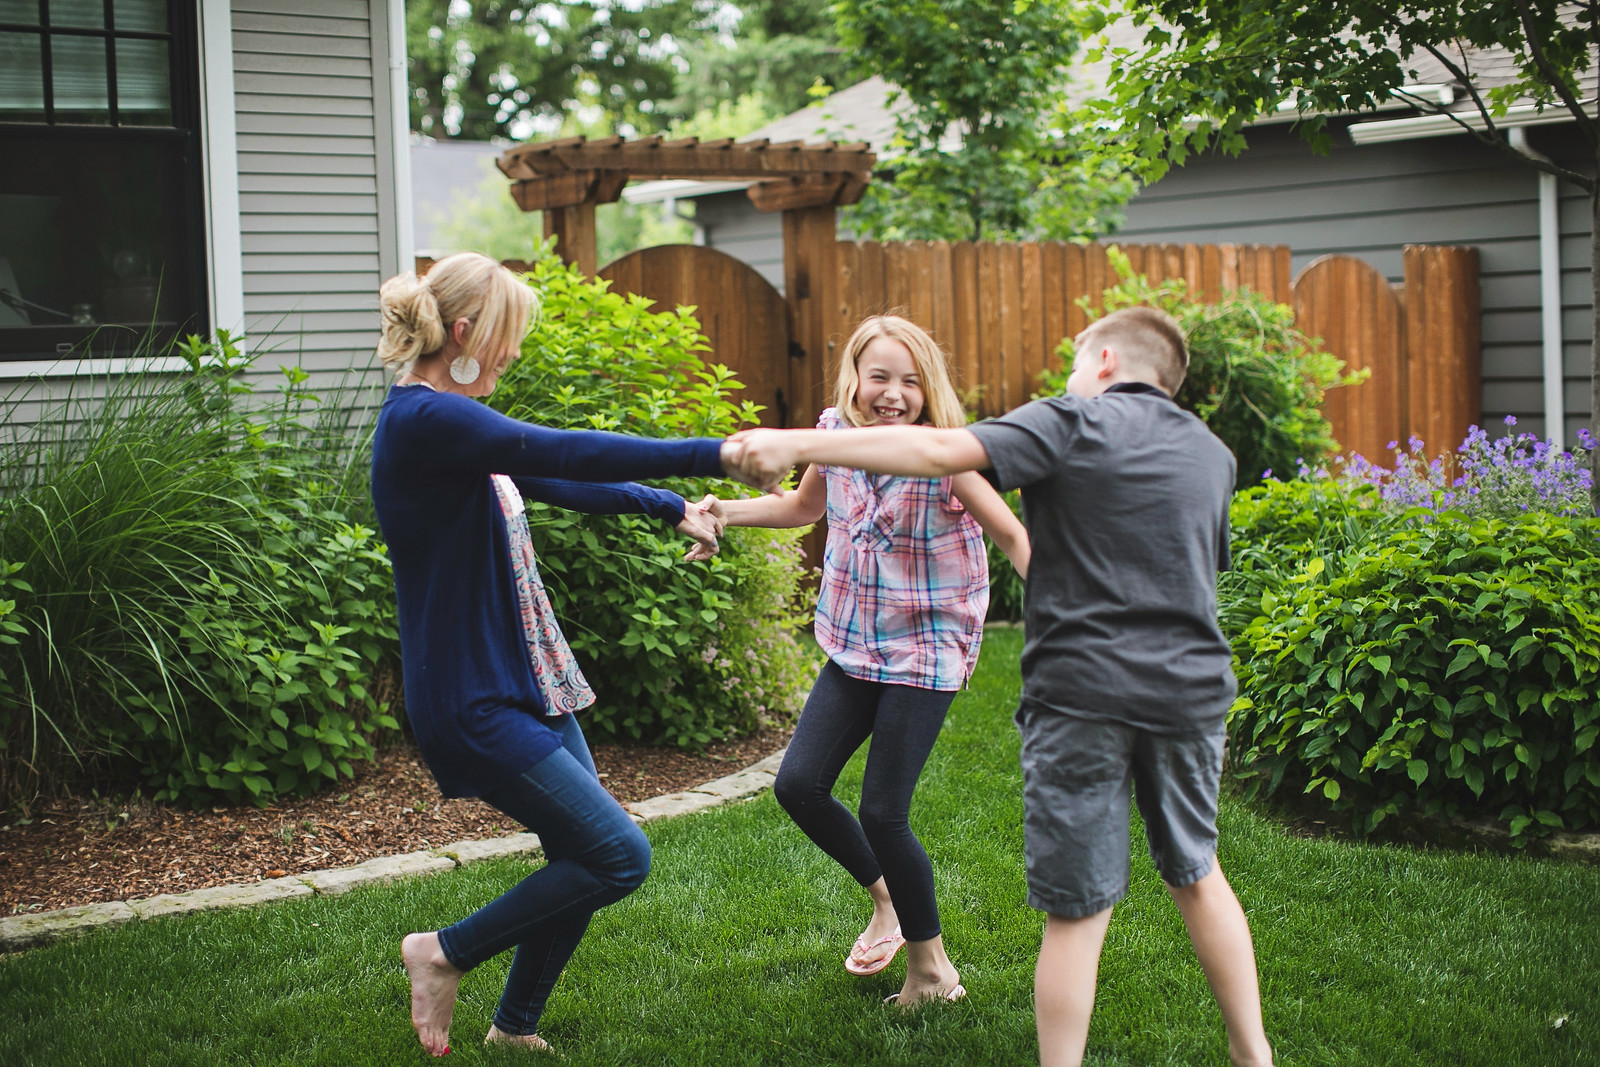 life lessons learned in 10 years – Collin and her kids playing